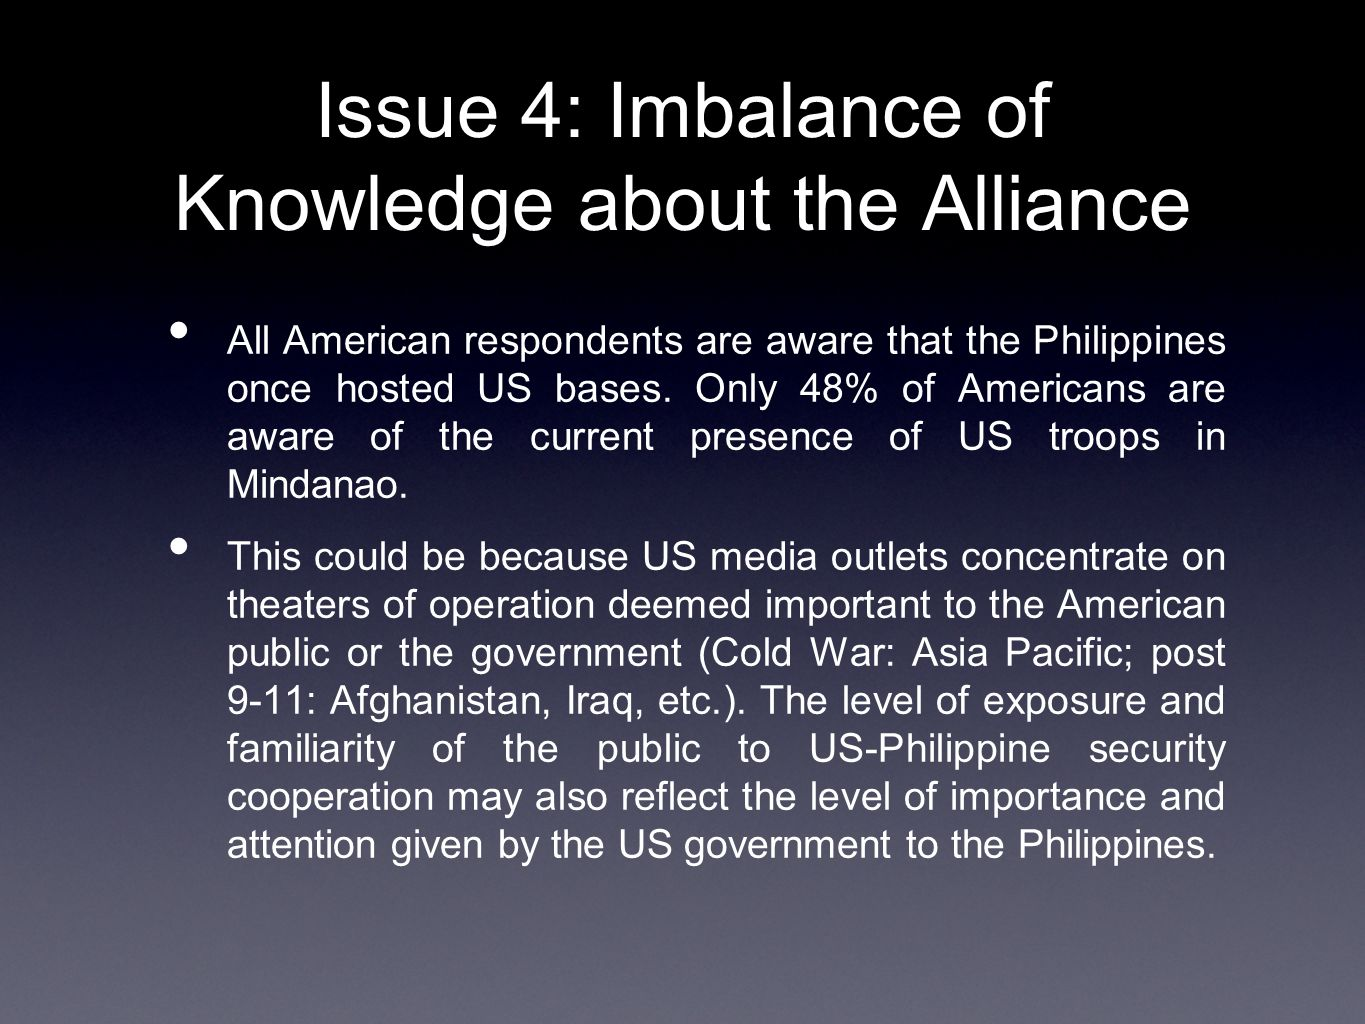 Issue 4: Imbalance of Knowledge about the Alliance All American respondents are aware that the Philippines once hosted US bases.